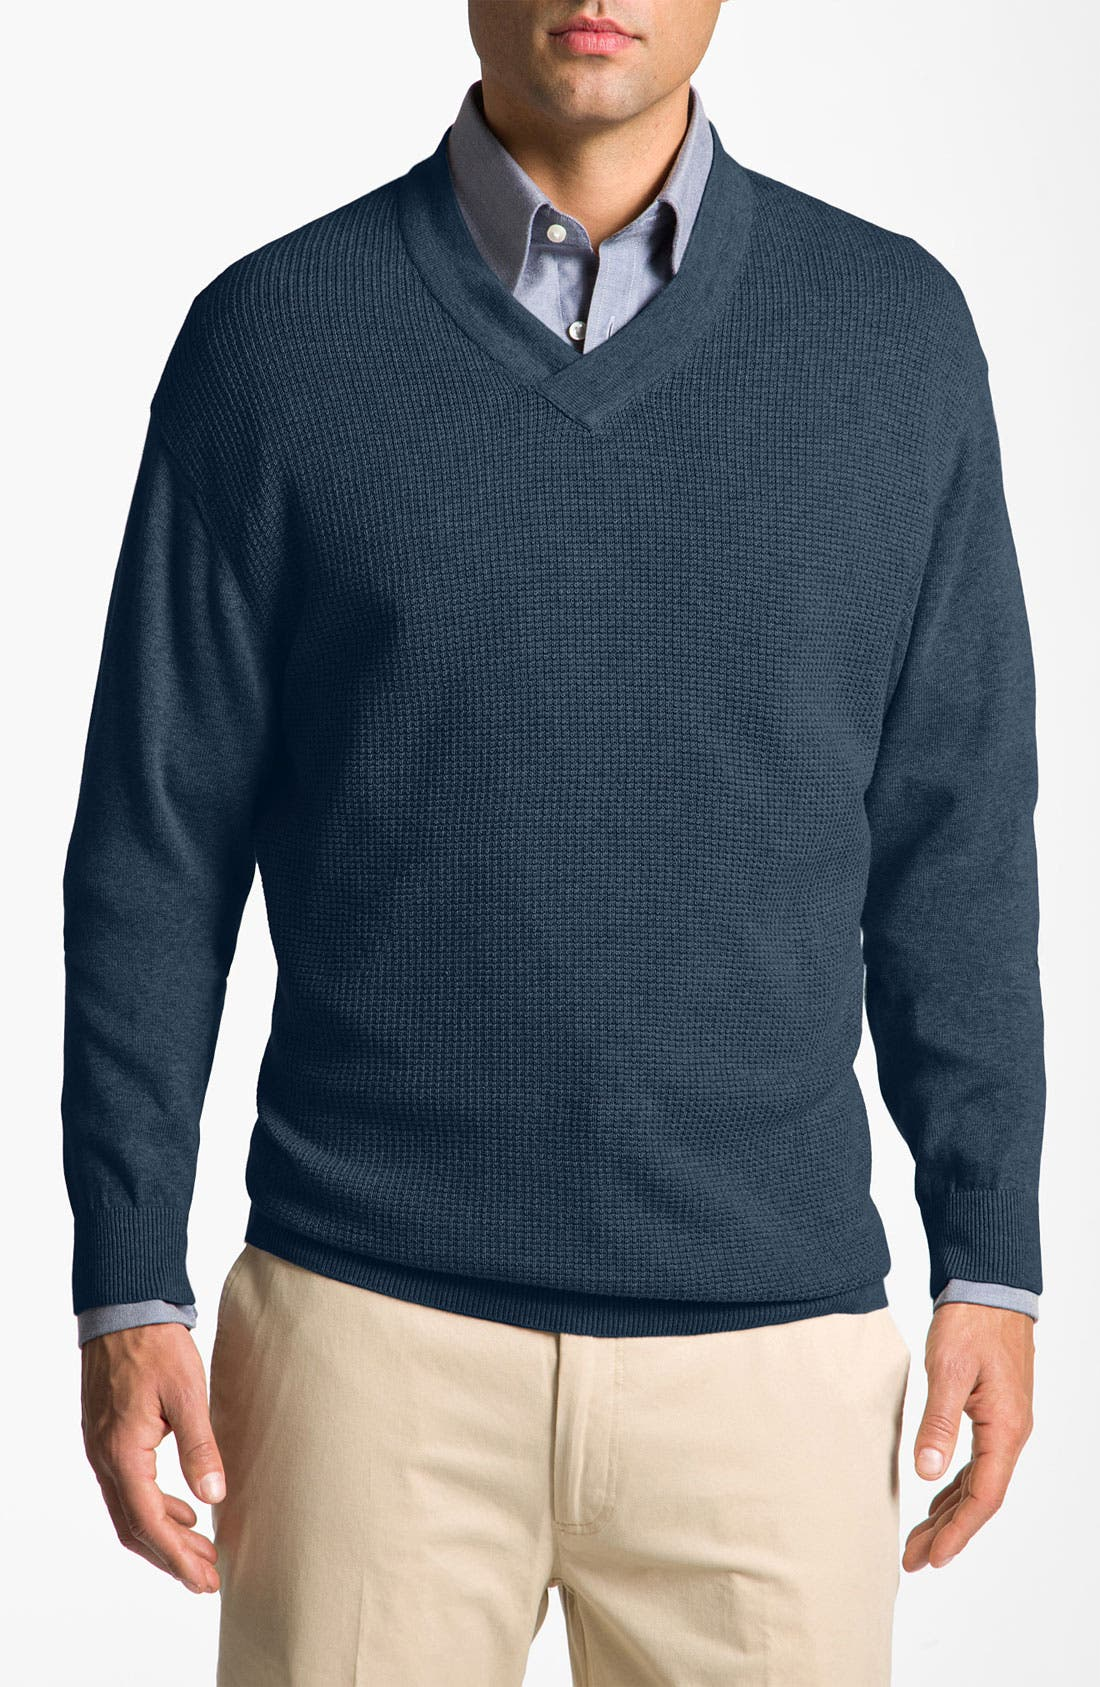 Alternate Image 1 Selected - Cutter & Buck 'Portage Bay' V-Neck Sweater (Big & Tall)